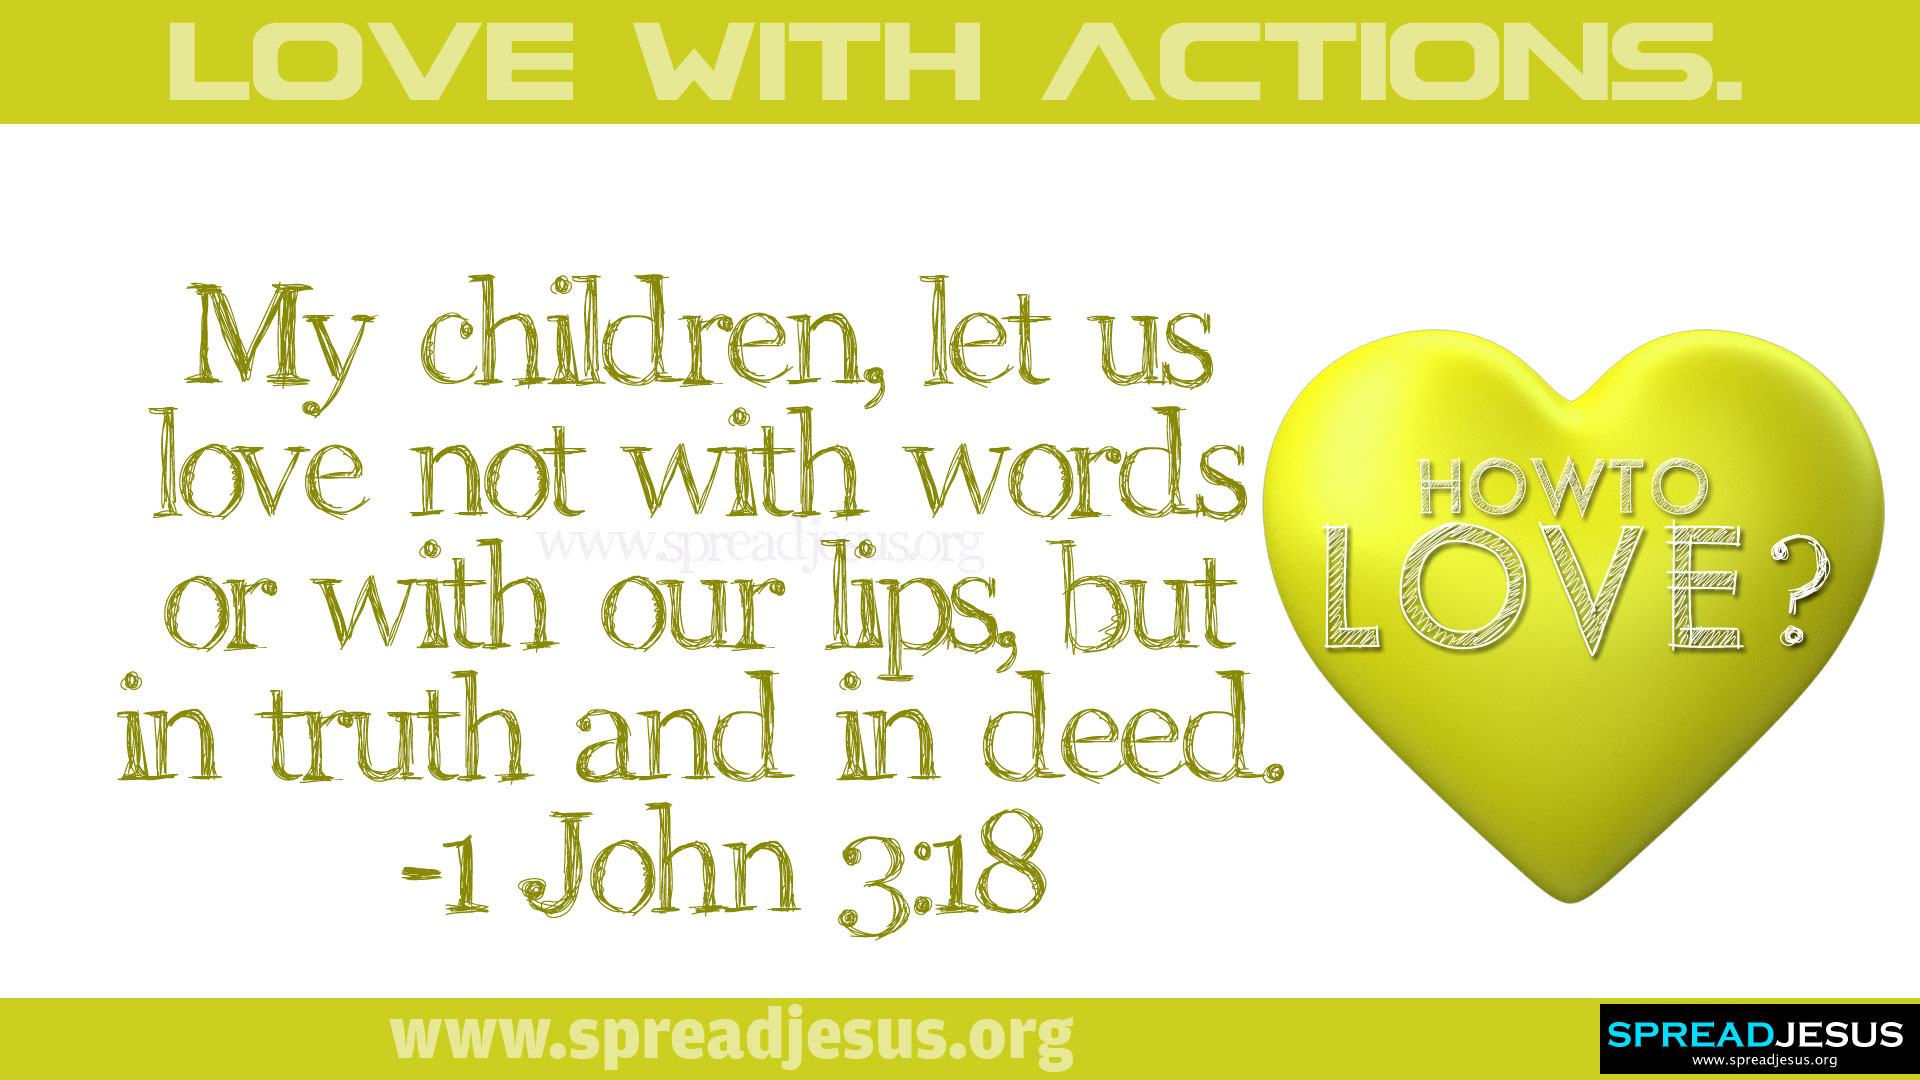 How to love?LOVE WITH ACTIONS. BIBLE QUOTES 1 John 3:18 HD-WALLPAPER DOWNLOAD -My children,let us love not with words or with our lips, but in truth and in deed. 1 John 3:18